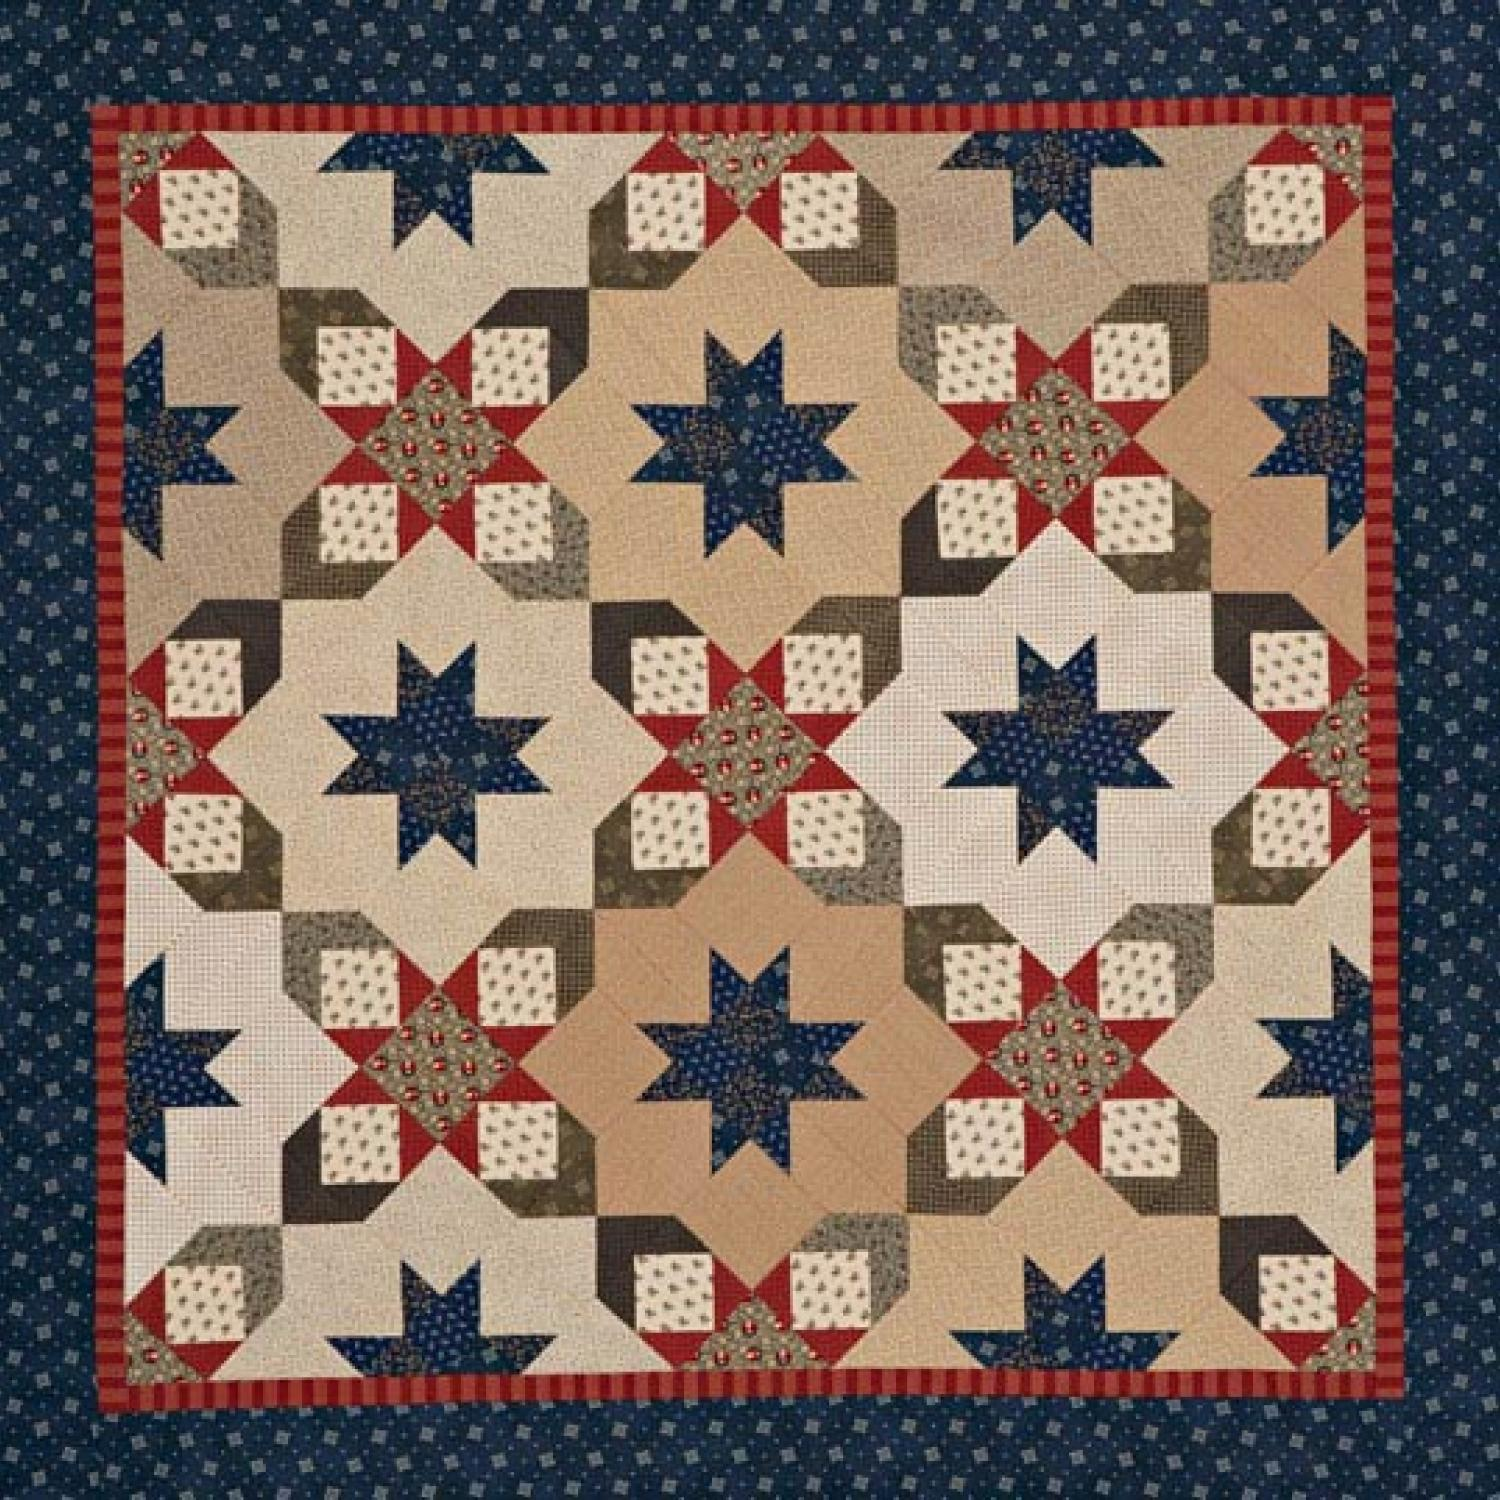 Starry square in a square quilt for Red door design quilts